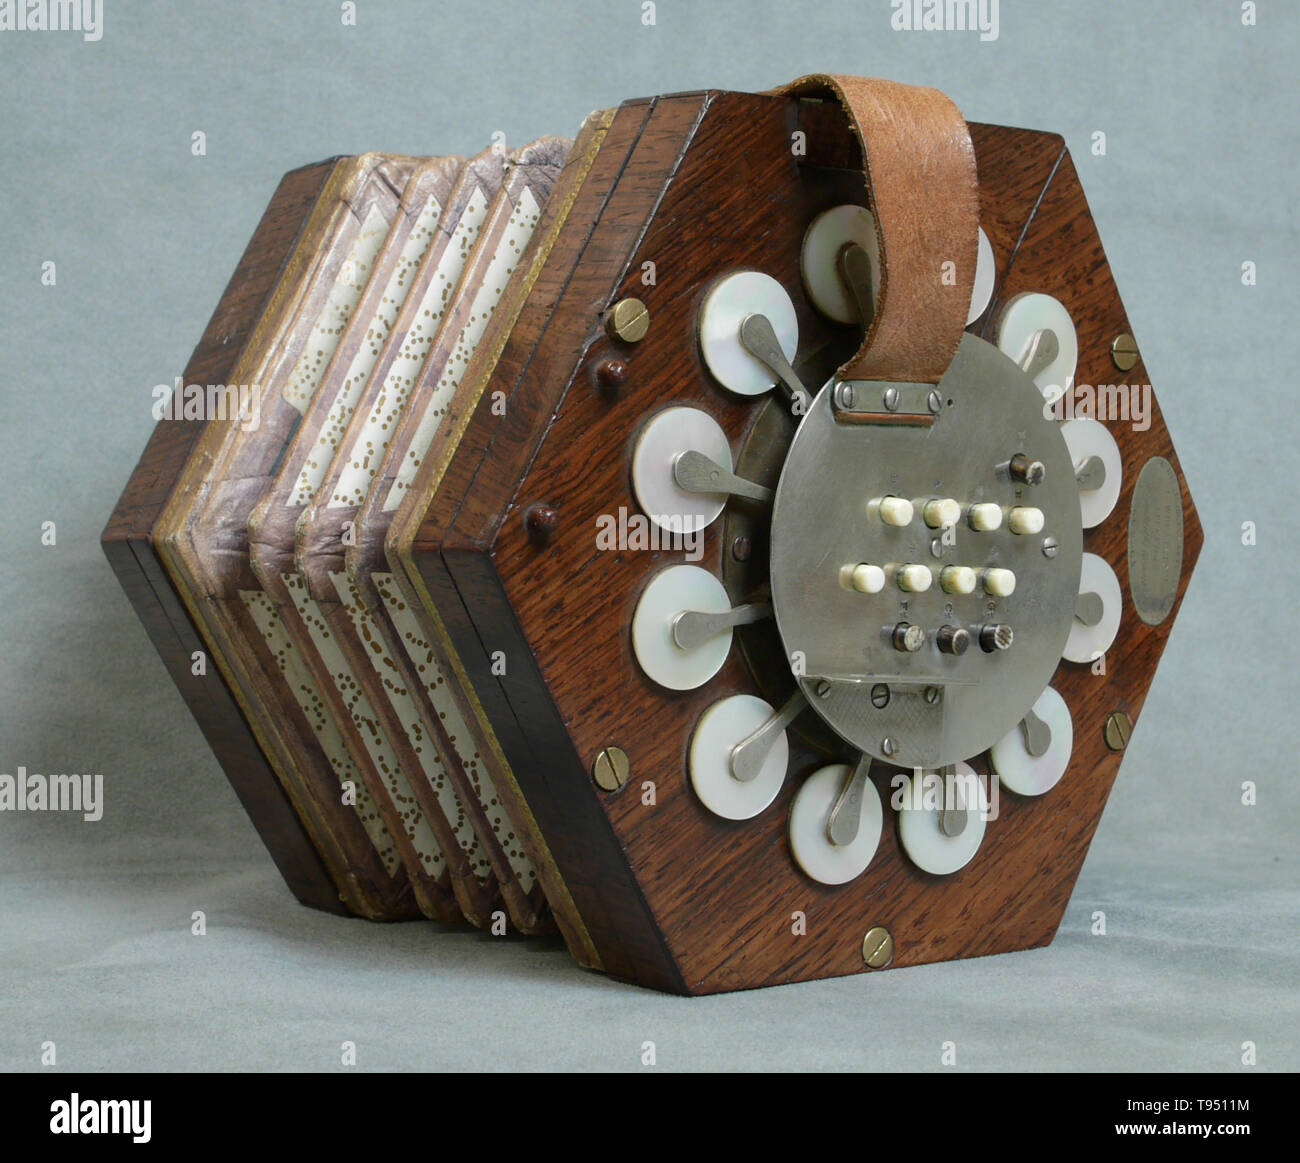 A concertina made by Charles Wheatstone (1802-1875) in London, England between 1831 and 1837. The concertina was invented in England and Germany, most likely independently. The English version was invented in 1829 by Sir Charles Wheatstone, while Carl Friedrich Uhlig announced the German version five years later, in 1834. Apart from the concertina, Charles Wheatstone invented the stereoscope (a device for displaying three-dimensional images), and the Playfair cipher (an encryption technique). He is best known for his contributions in the development of the Wheatstone bridge, originally invente - Stock Image